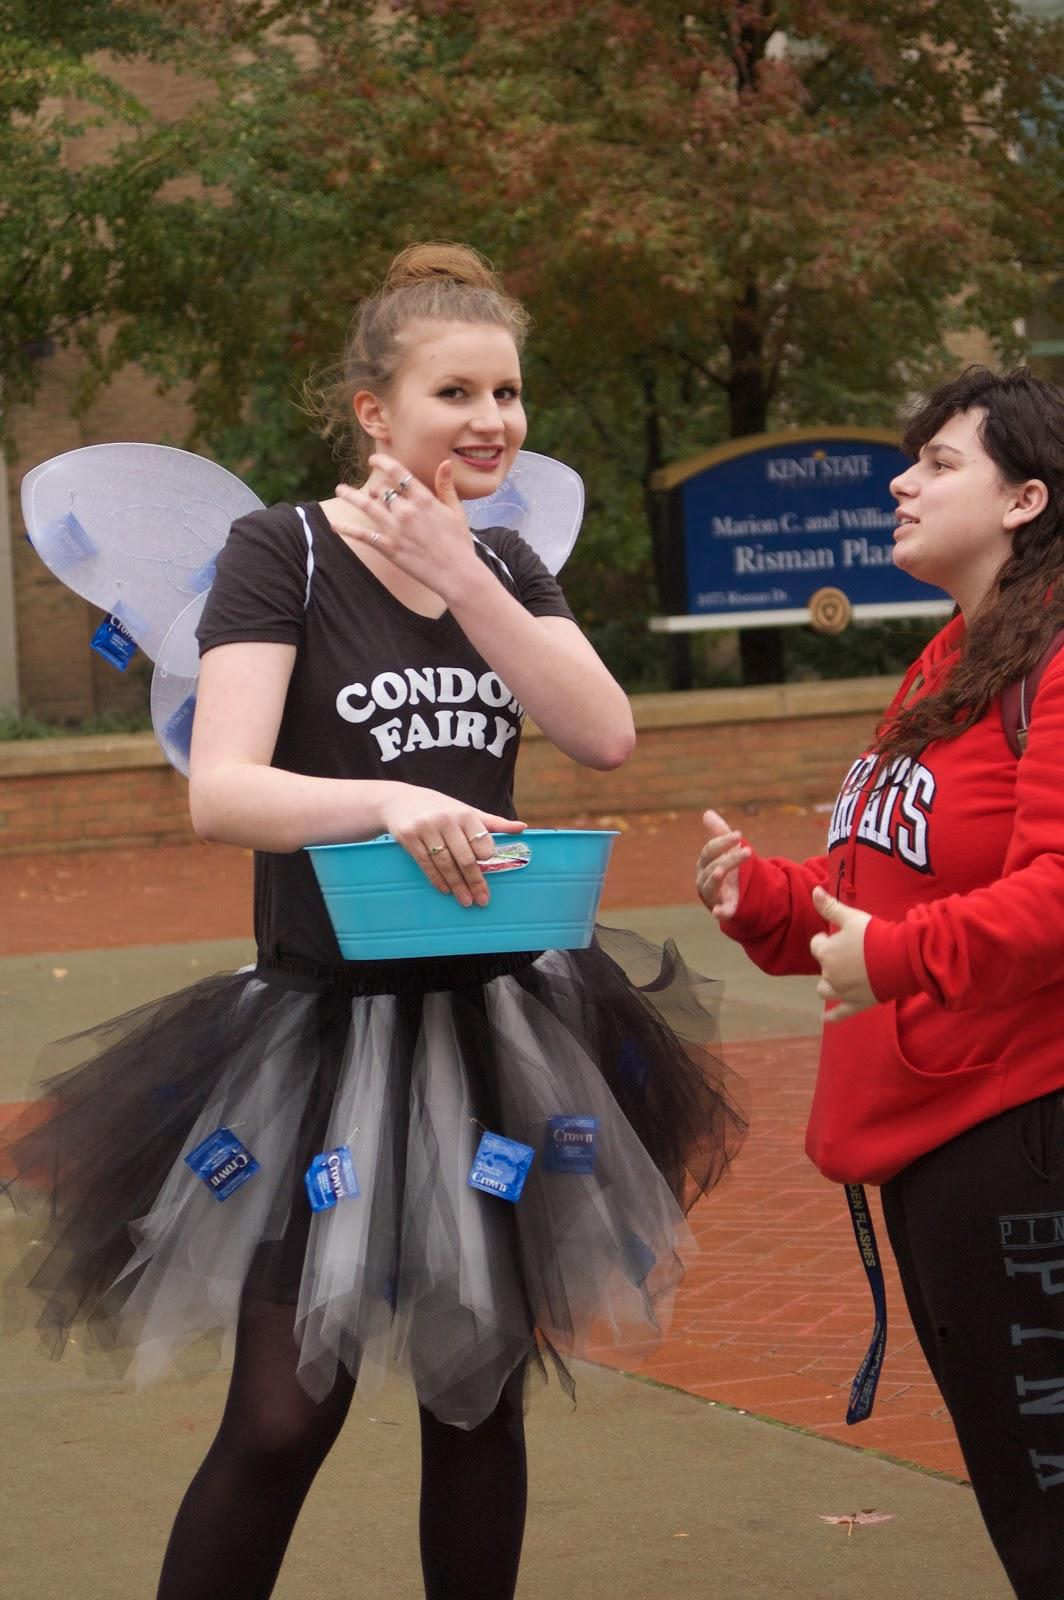 Clara Varndell, dressed as the Condom Fairy, hands out condoms to students on Risman Plaza during Sex Week.